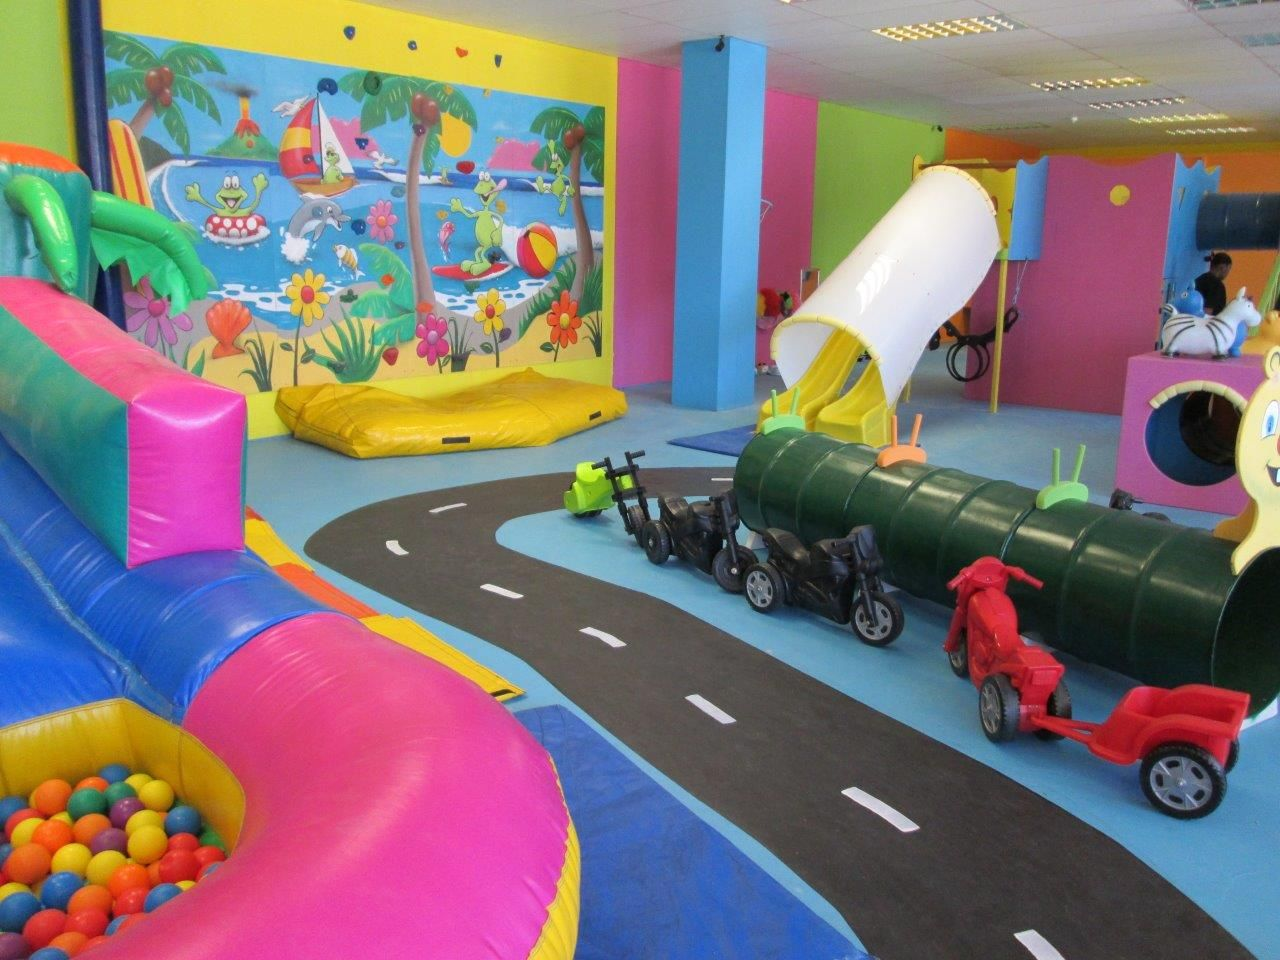 East London Funky Frogs Play Centre Funky Frogs Indoor Play - Childrens birthday party ideas east london